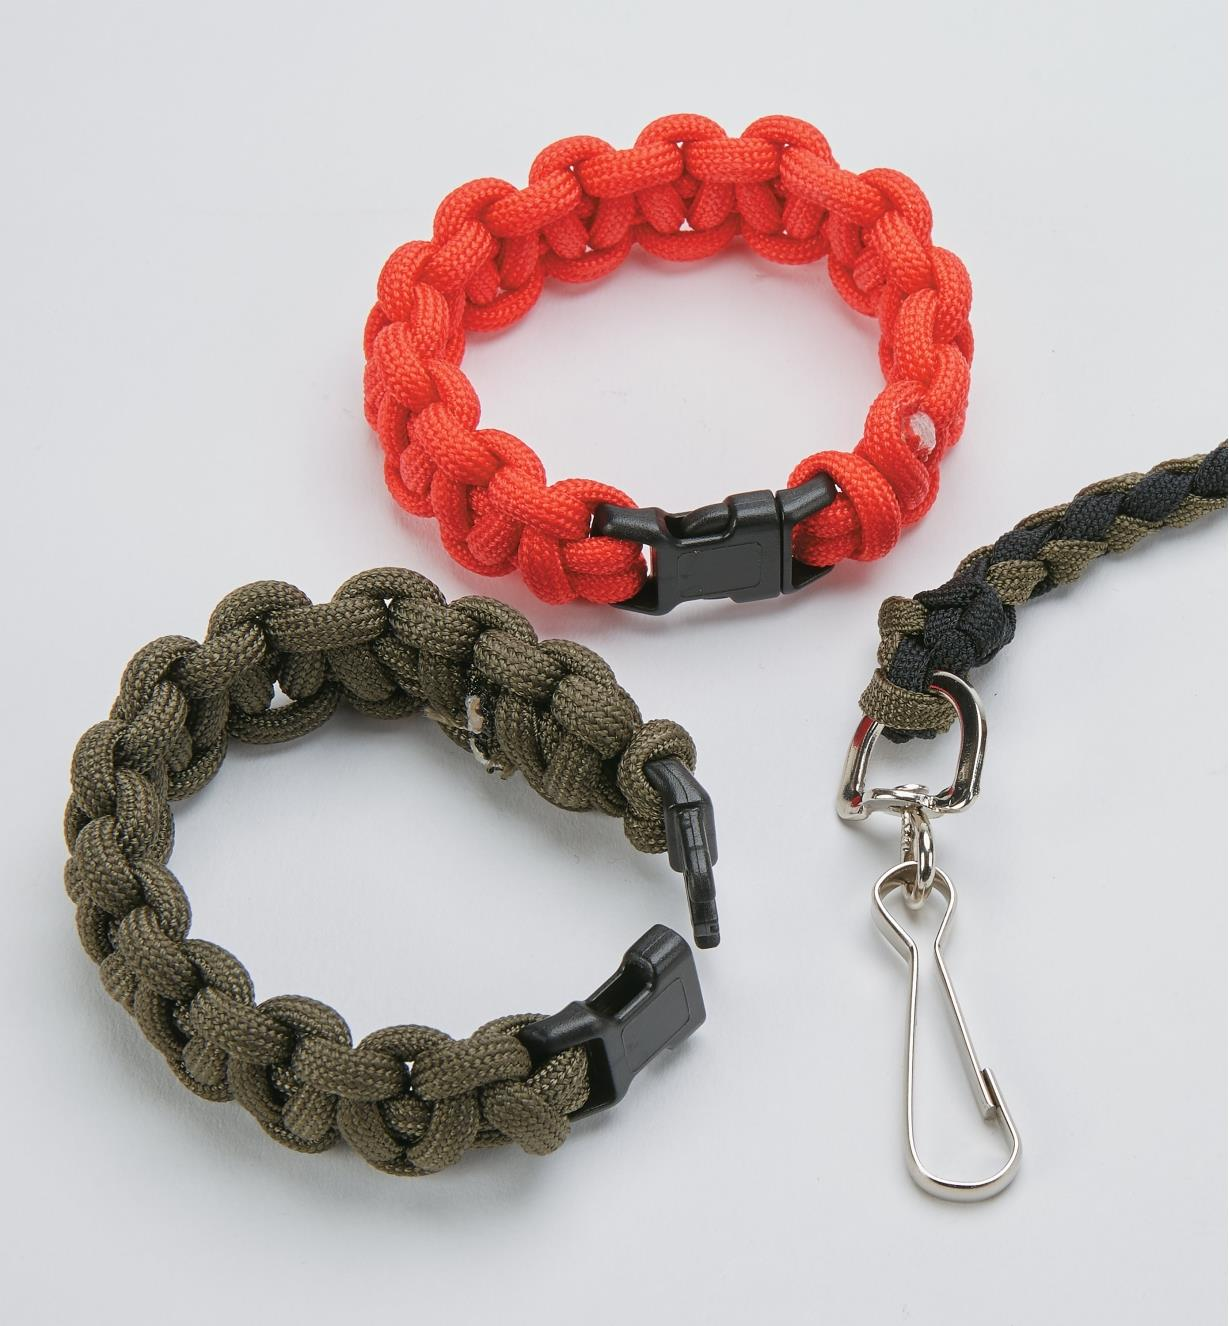 09A0871 - 15-pc. Paracord Findings Assorted Set